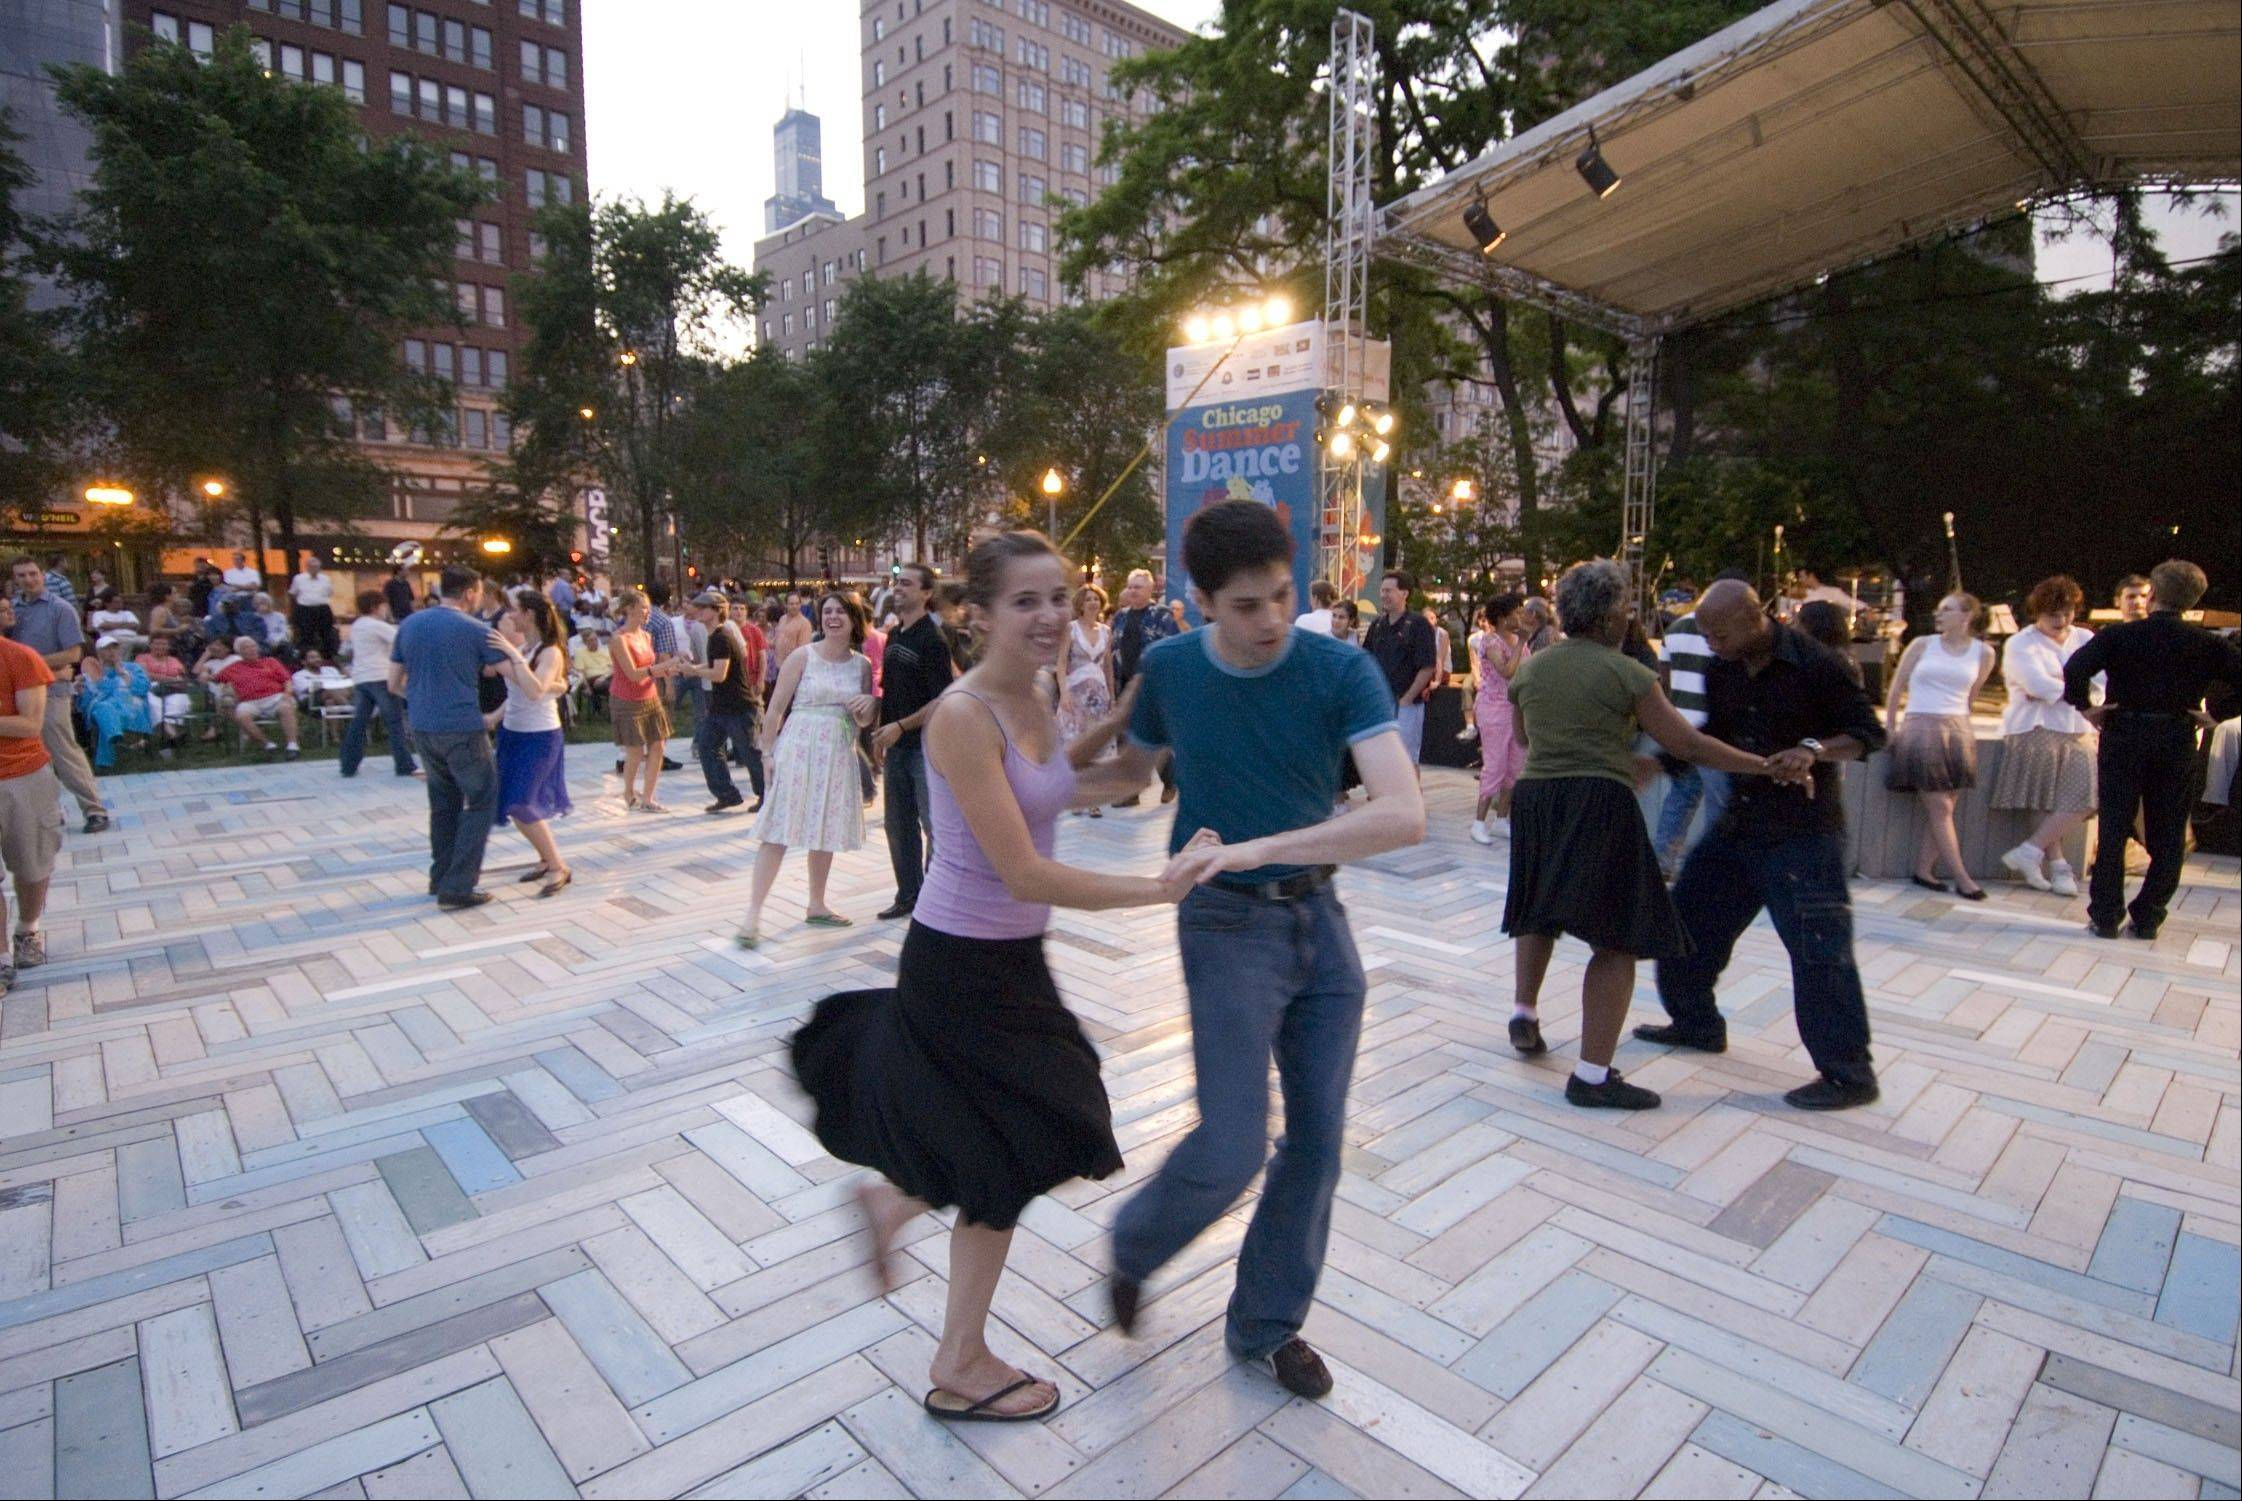 Dance under the stars with lessons and open dancing at Chicago SummerDance.